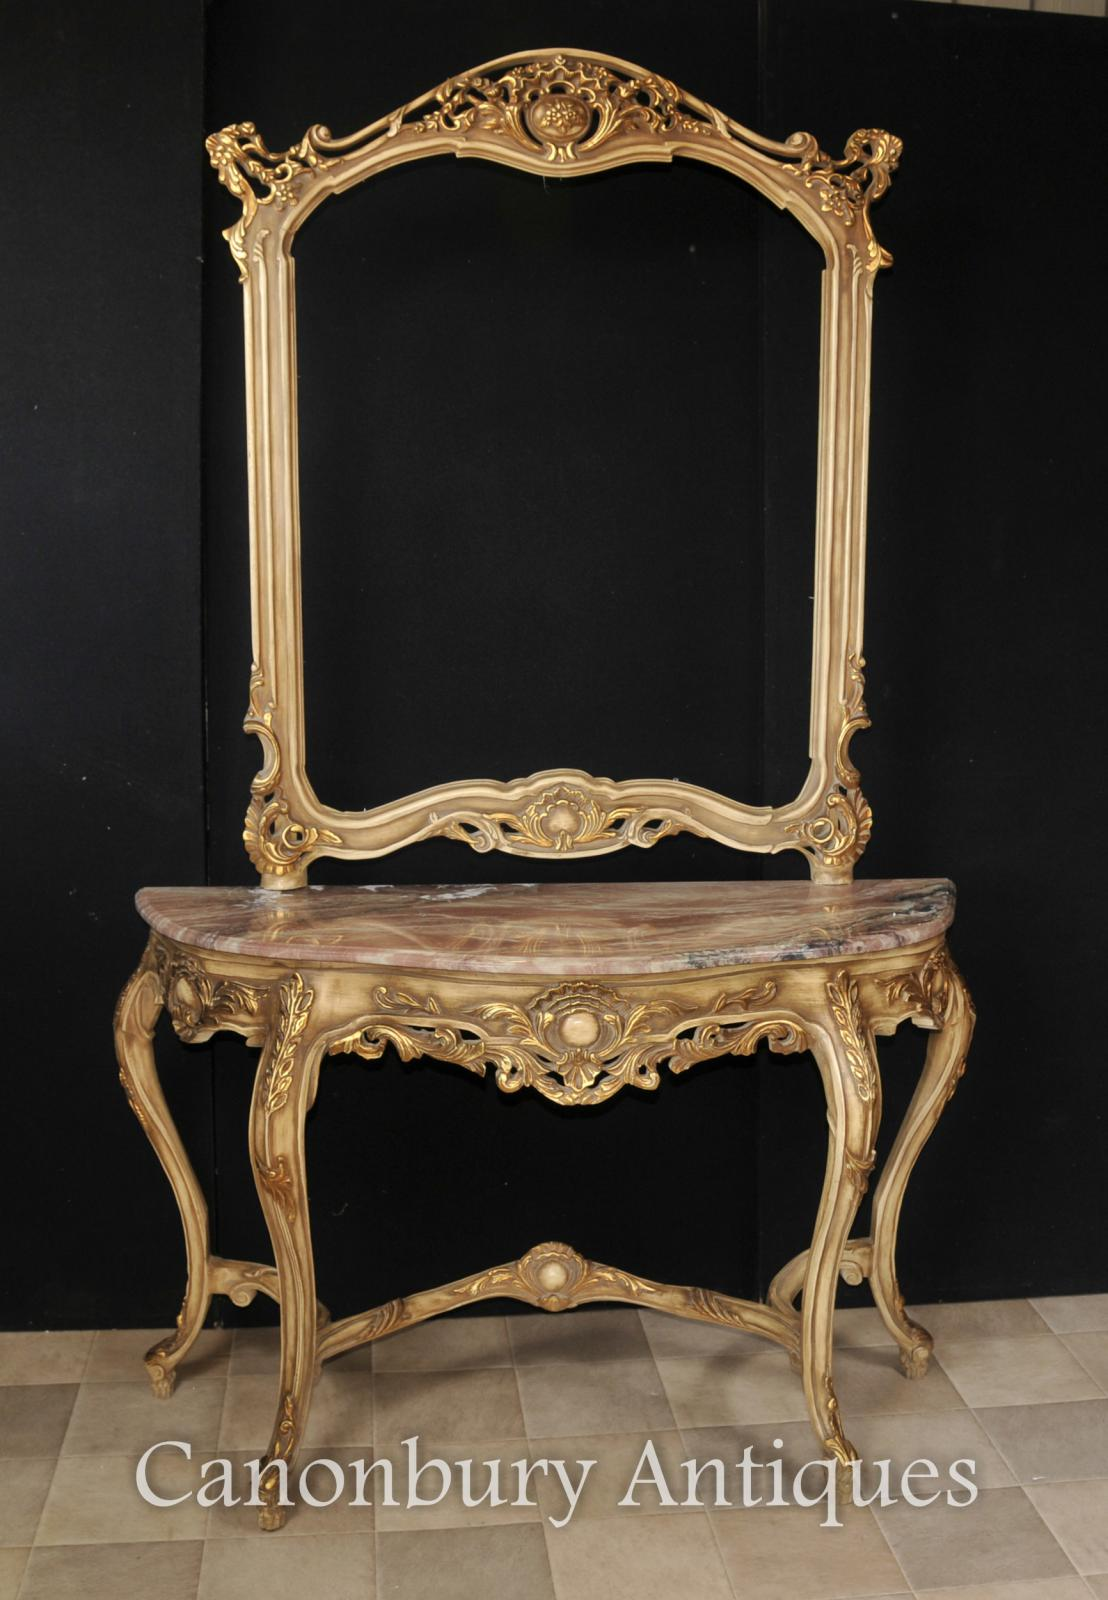 Foyer Table And Mirror On Sale On Kijiji : Louis xvi console table and mirror set gilt wood giltwood